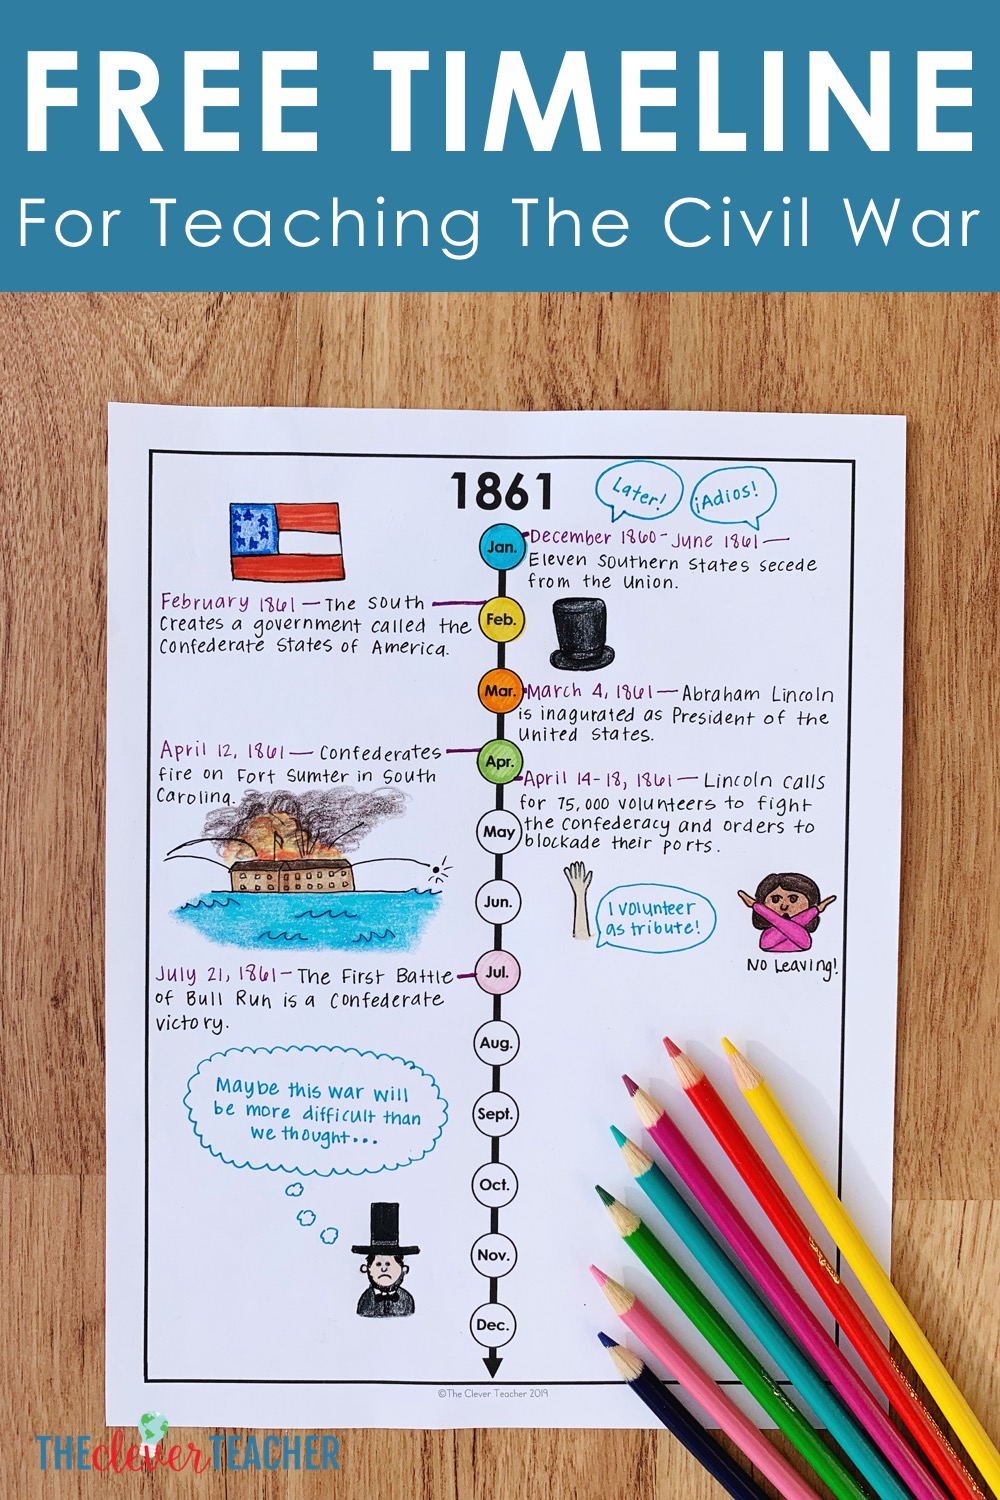 How To Teach The Civil War With Timelines Free Worksheet